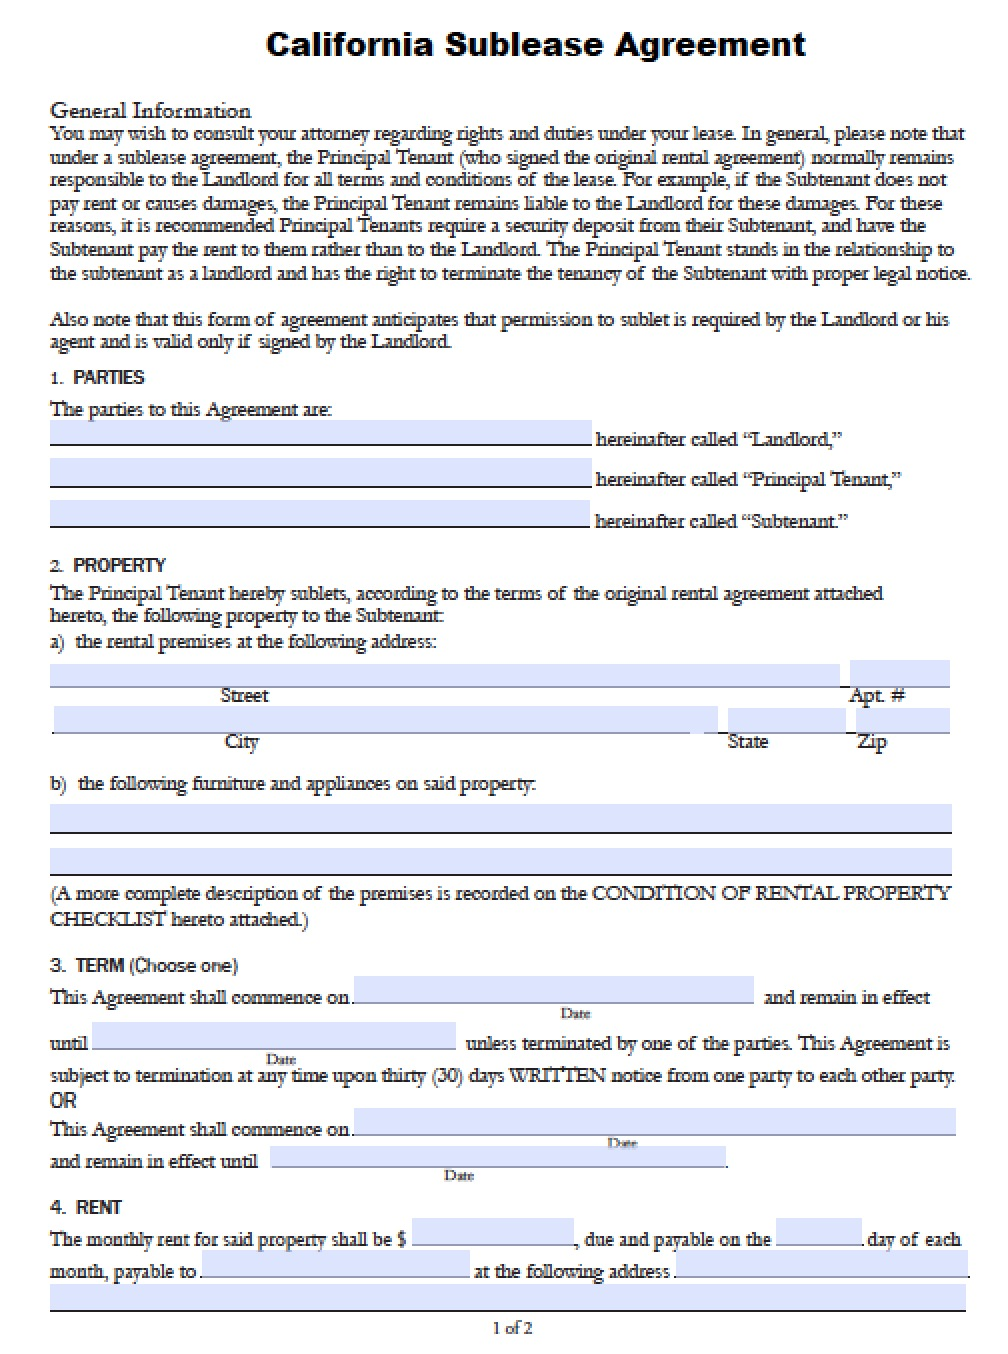 Free California SubLease Agreement PDF Word Doc - Rental lease agreement template microsoft word